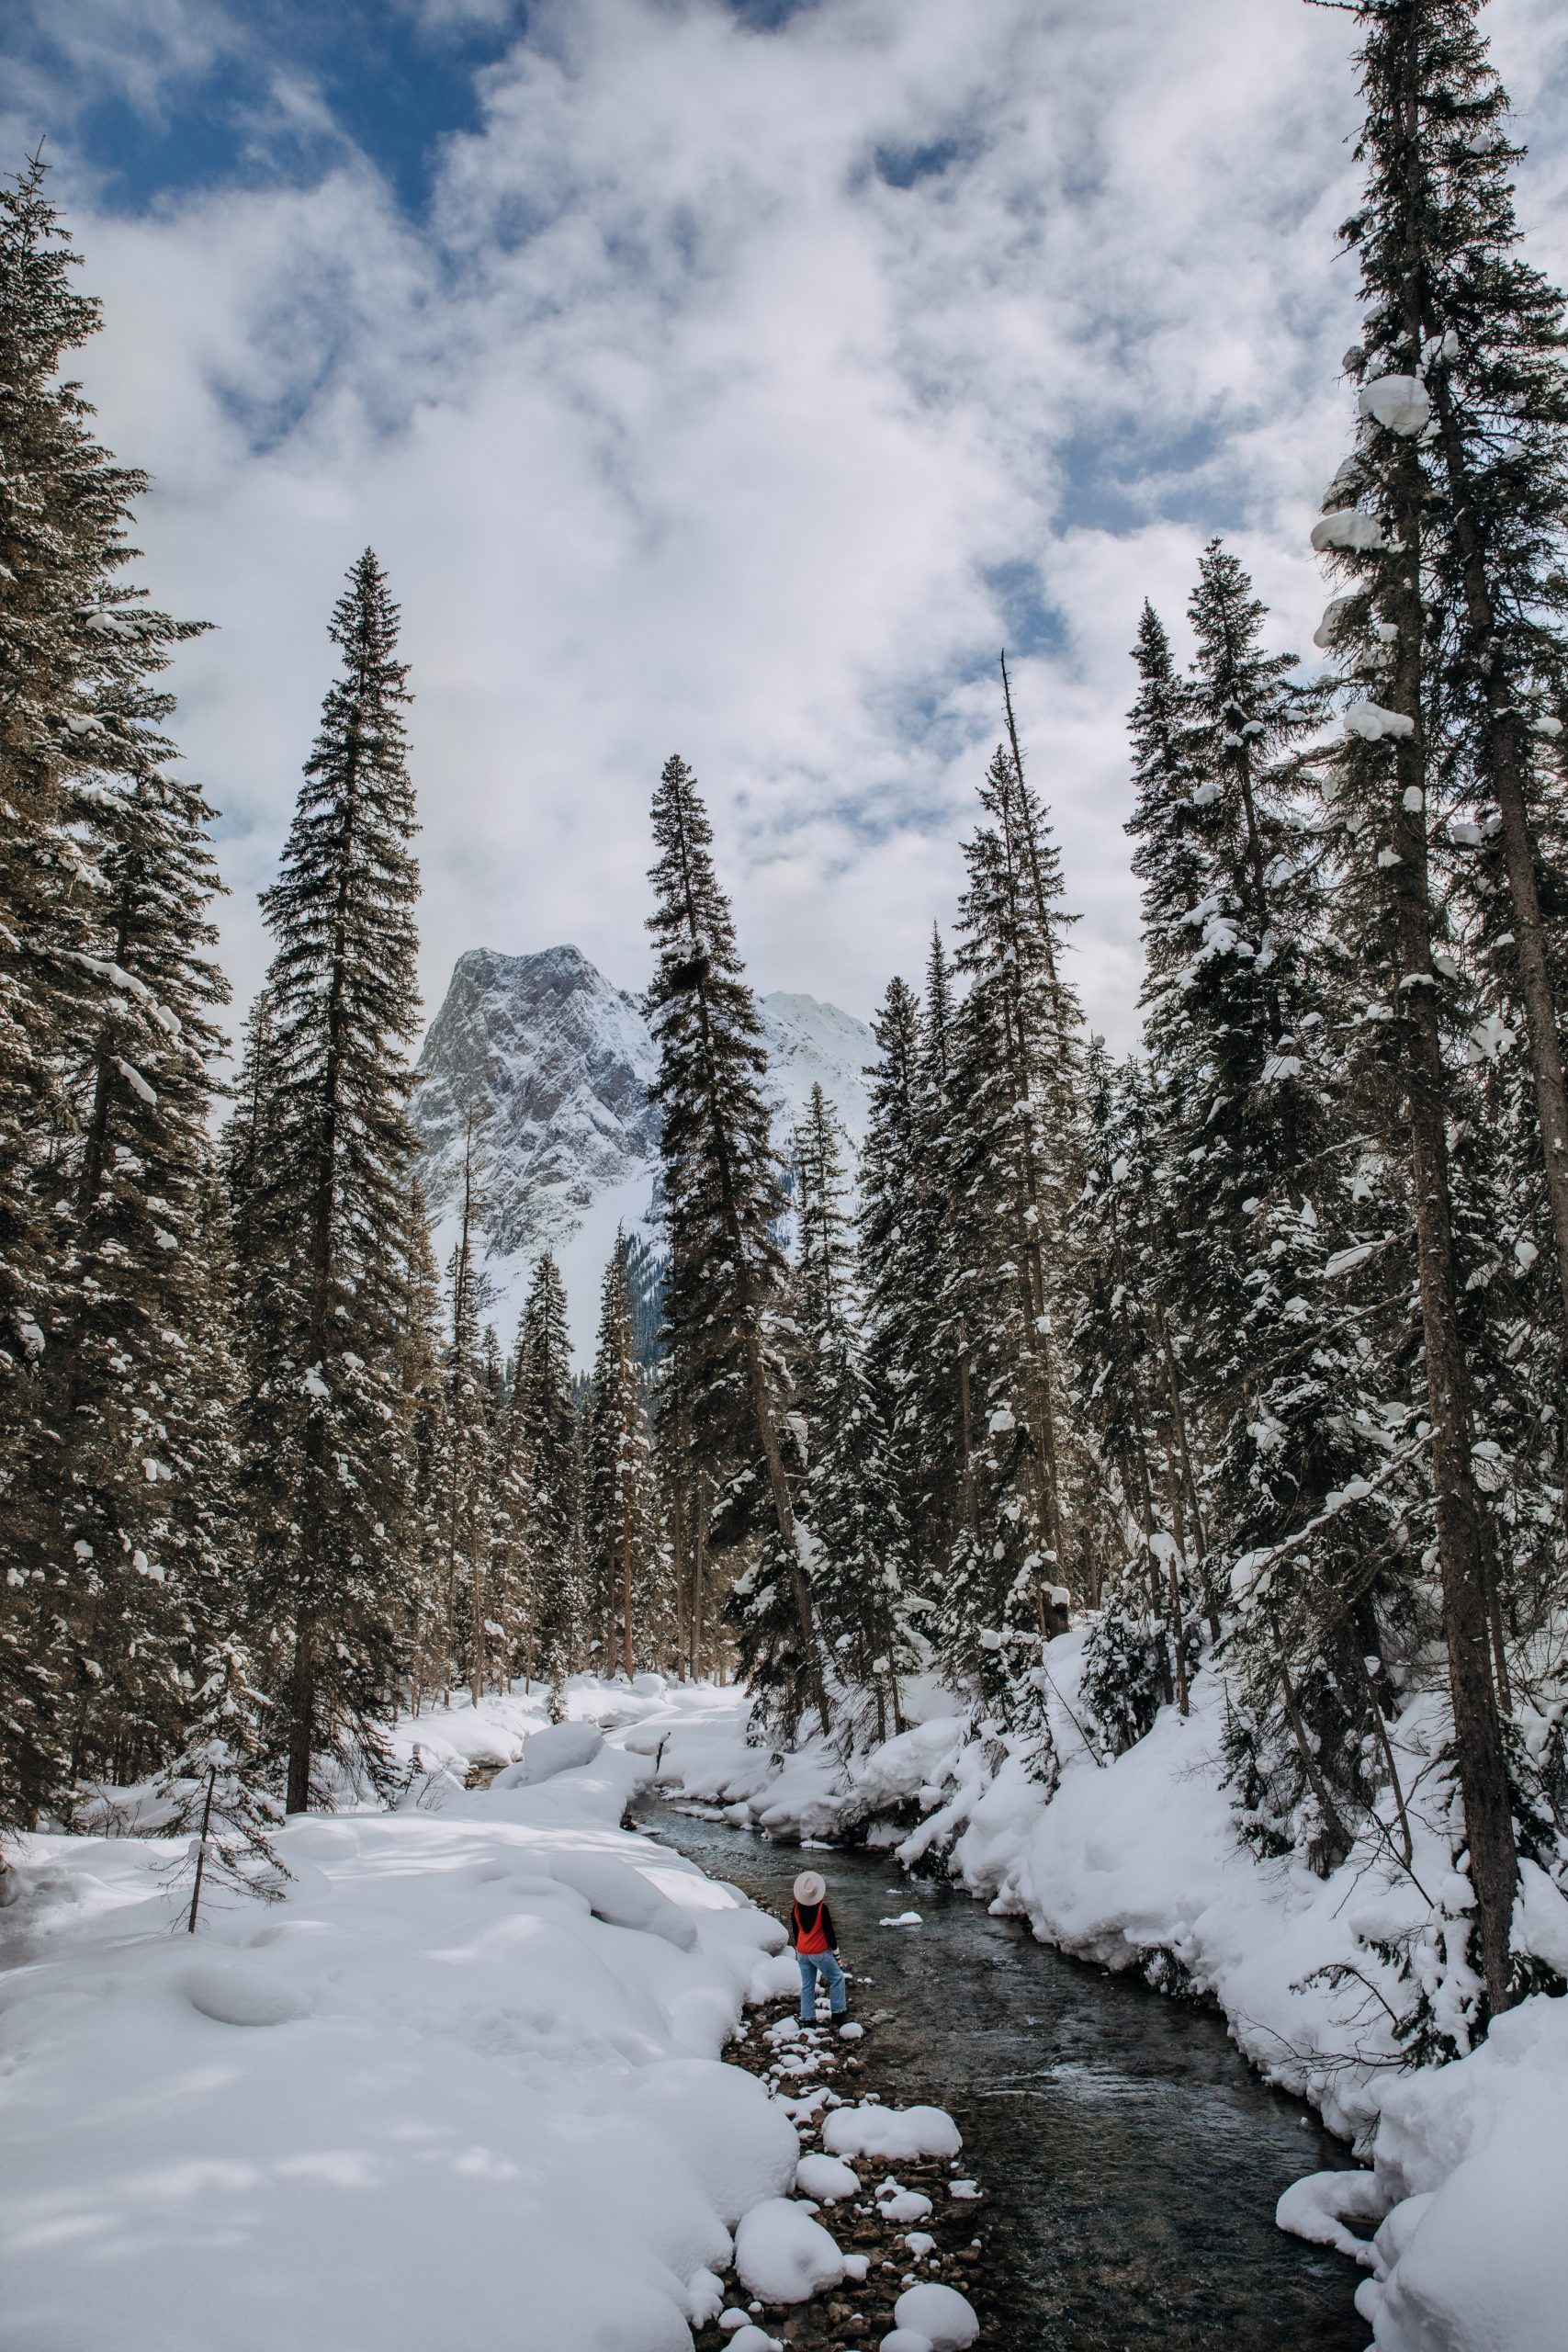 The Ultimate Banff Winter Guide - Emerald Lake Lodge in Yoho National Park